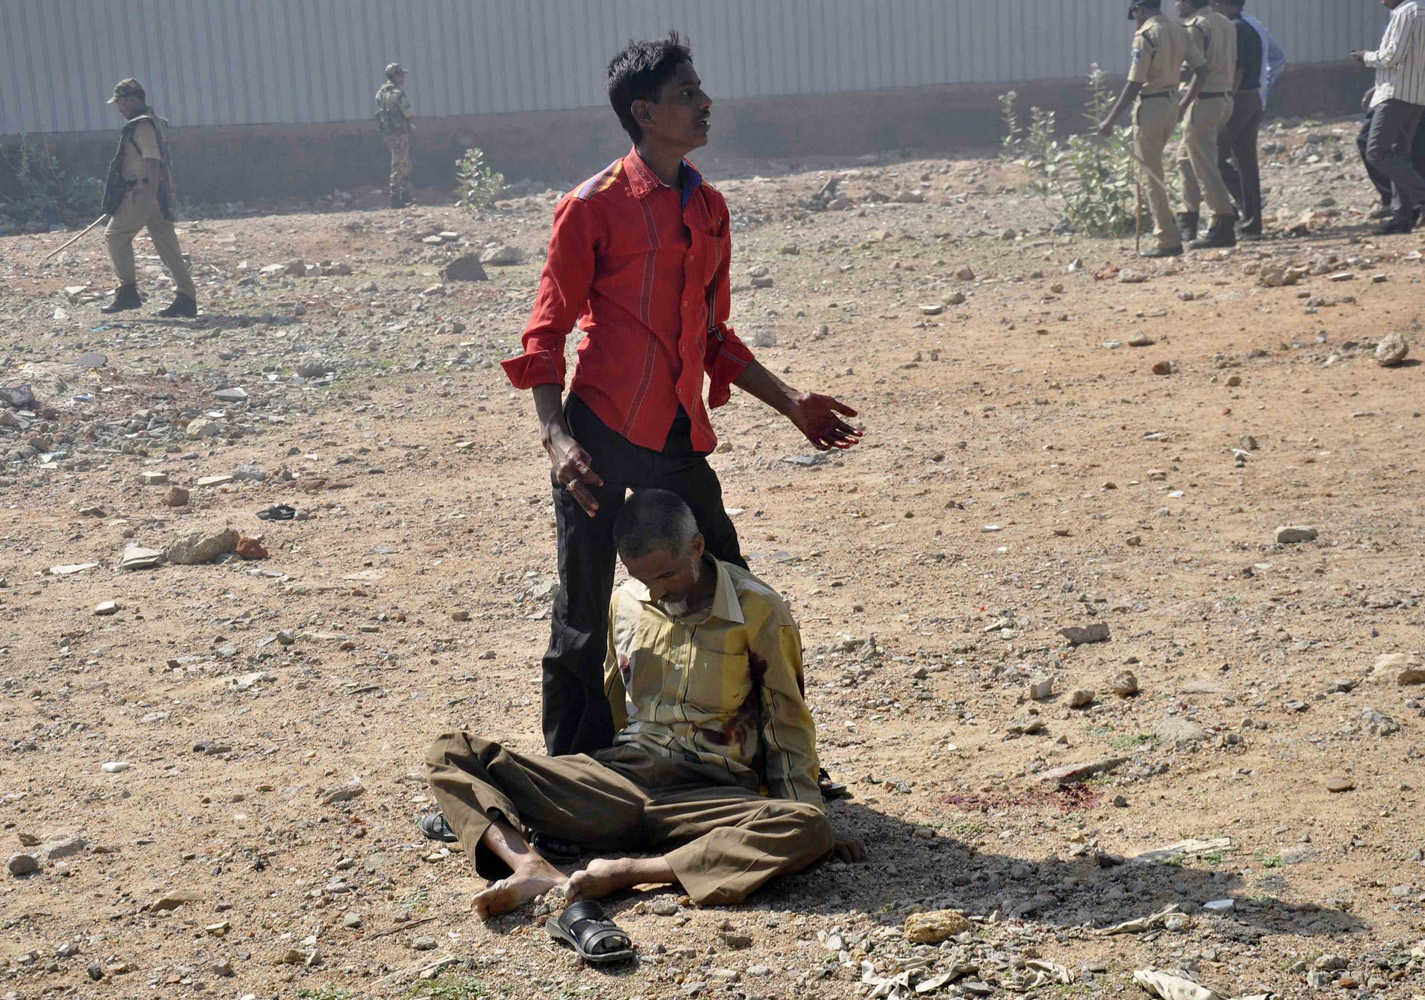 May 14, 2014. A man calls for help to carry his injured father to a hospital after clashes between two communities on the outskirts of the southern Indian city of Hyderabad.